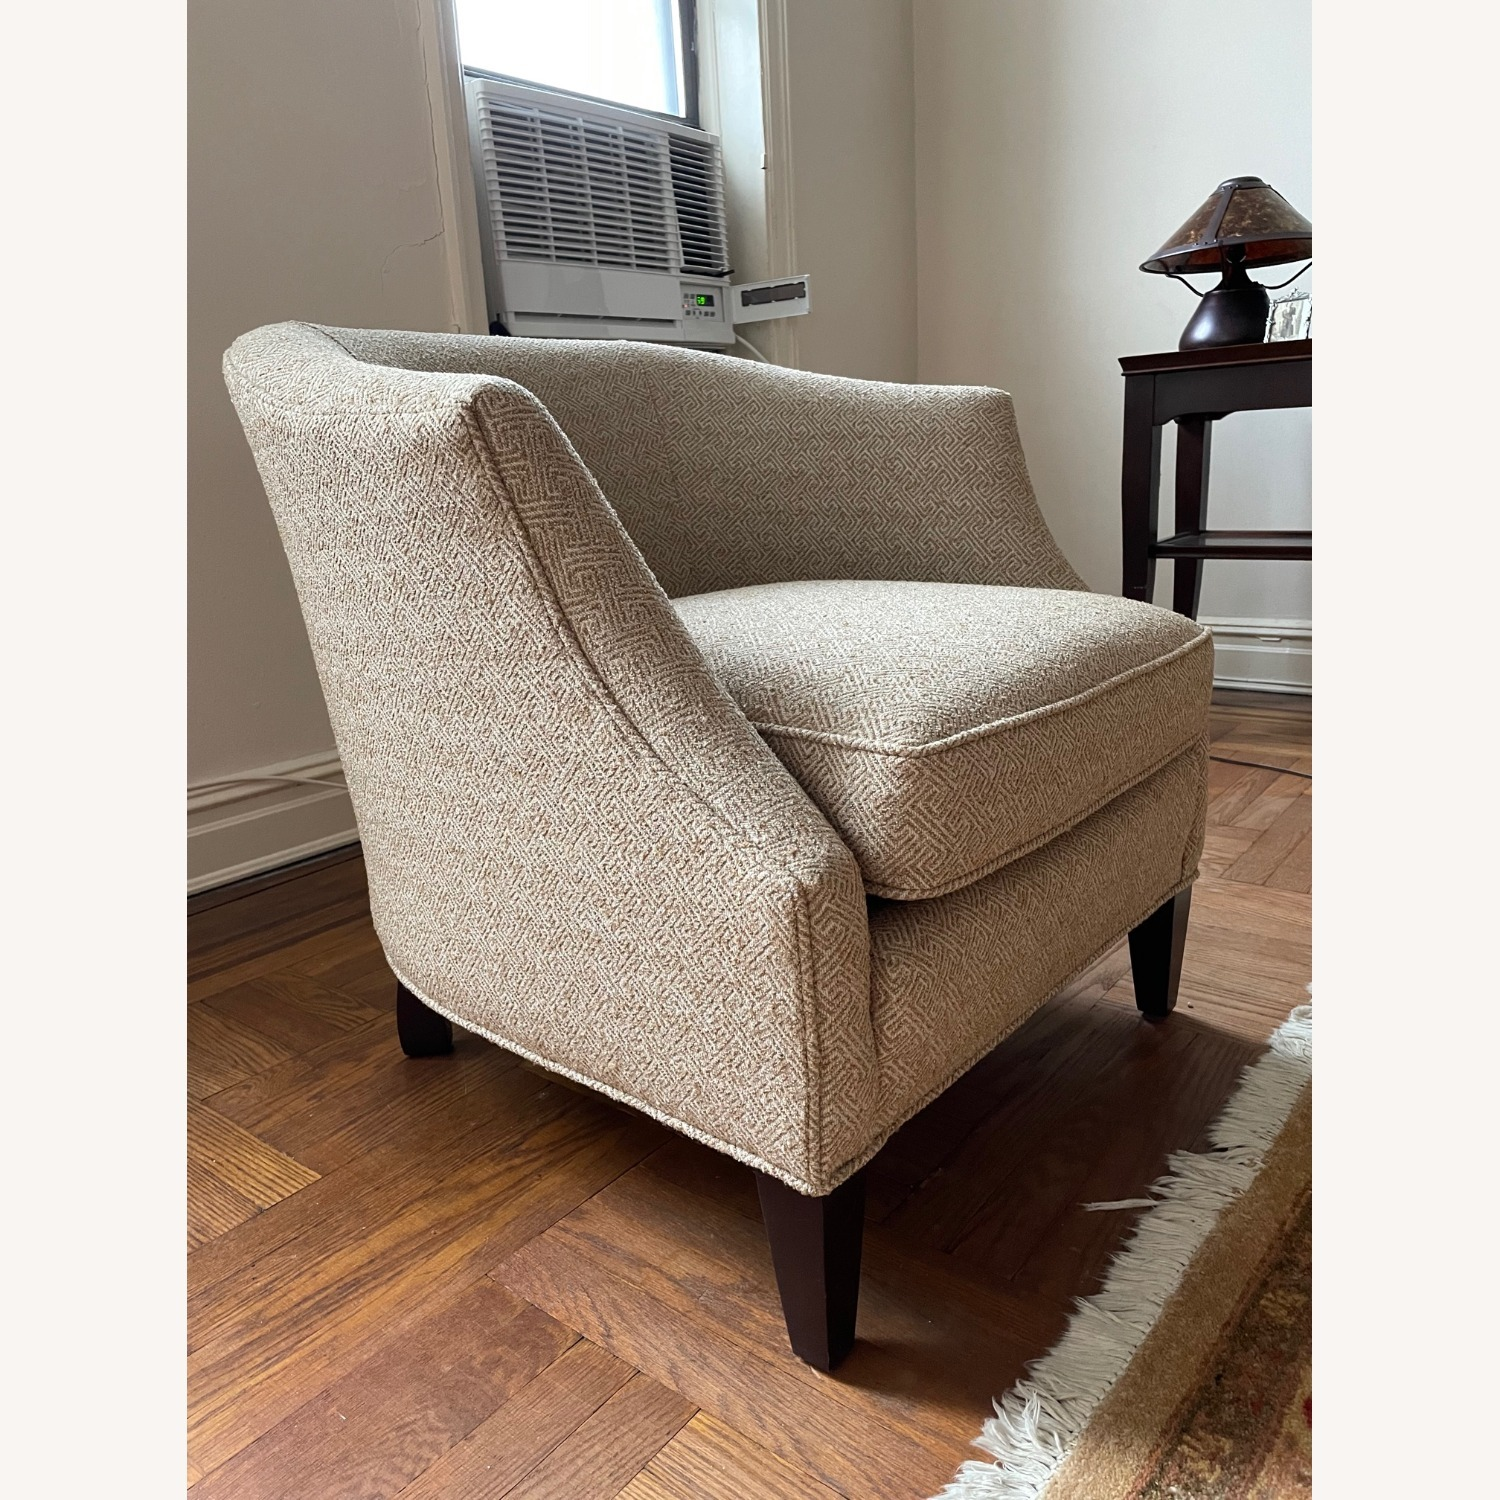 Brown Geometric Patterned Chair - image-2